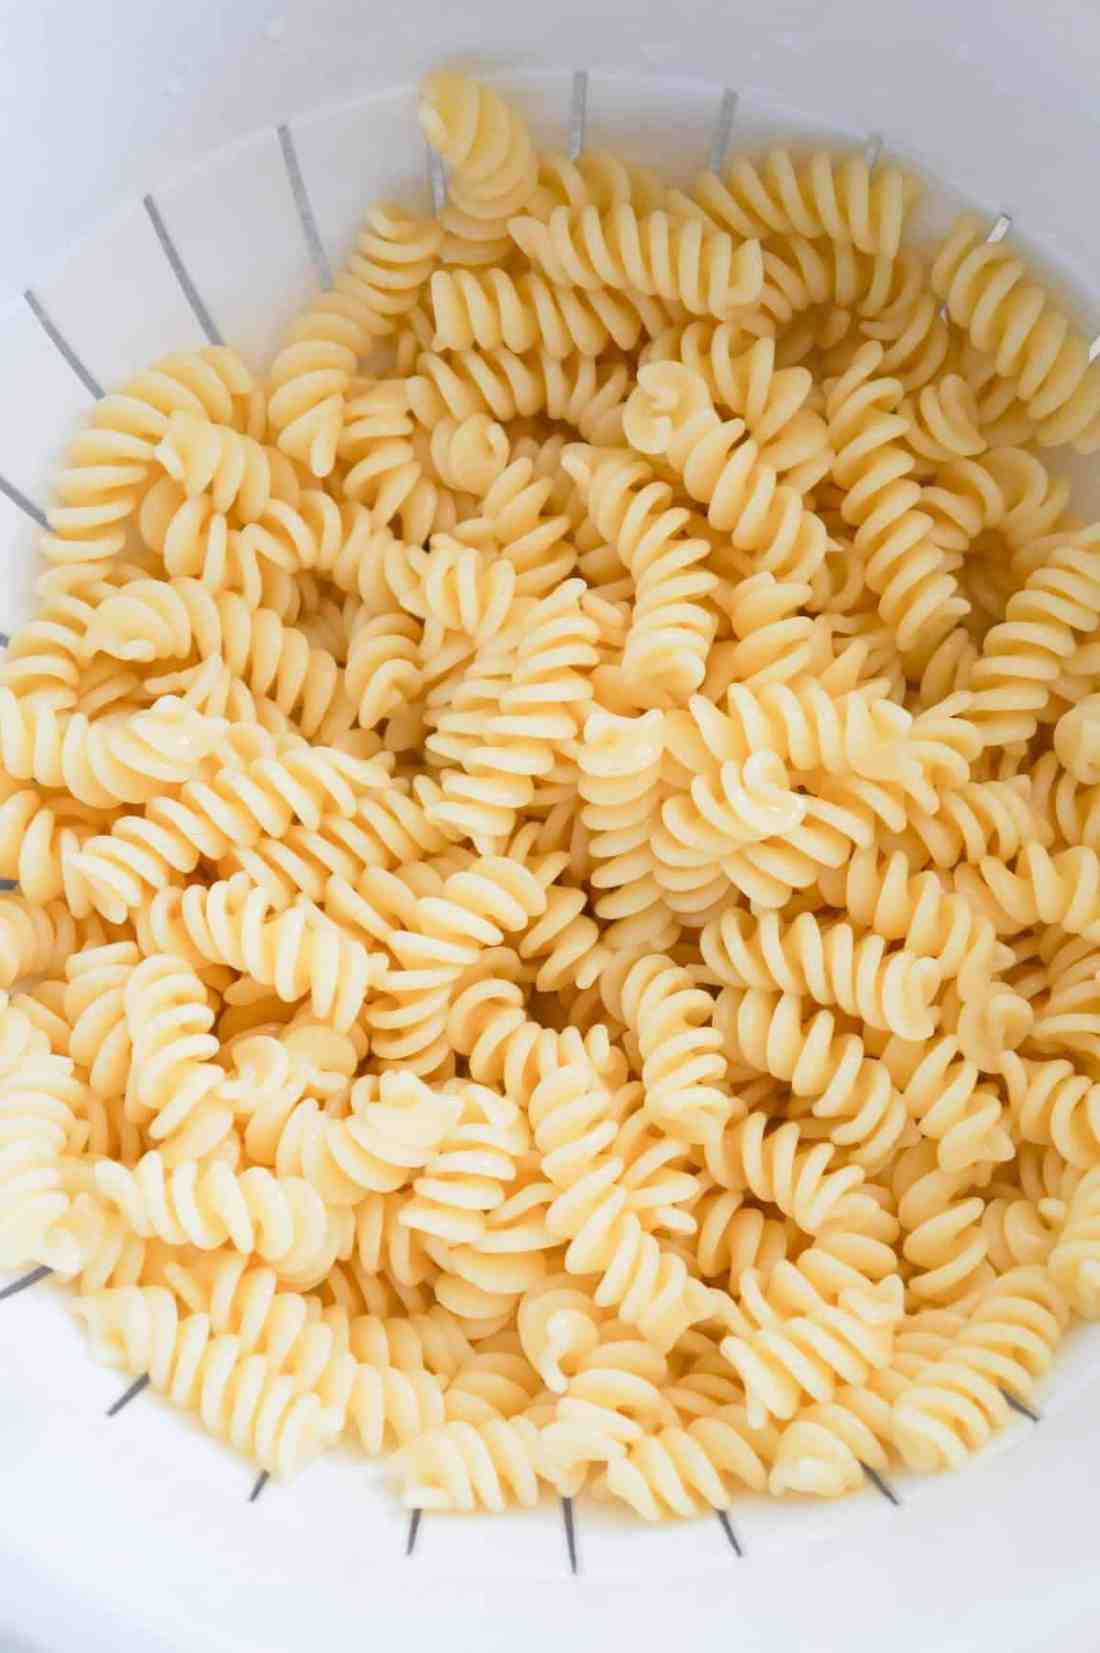 cooked fusilli noodles in a strainer